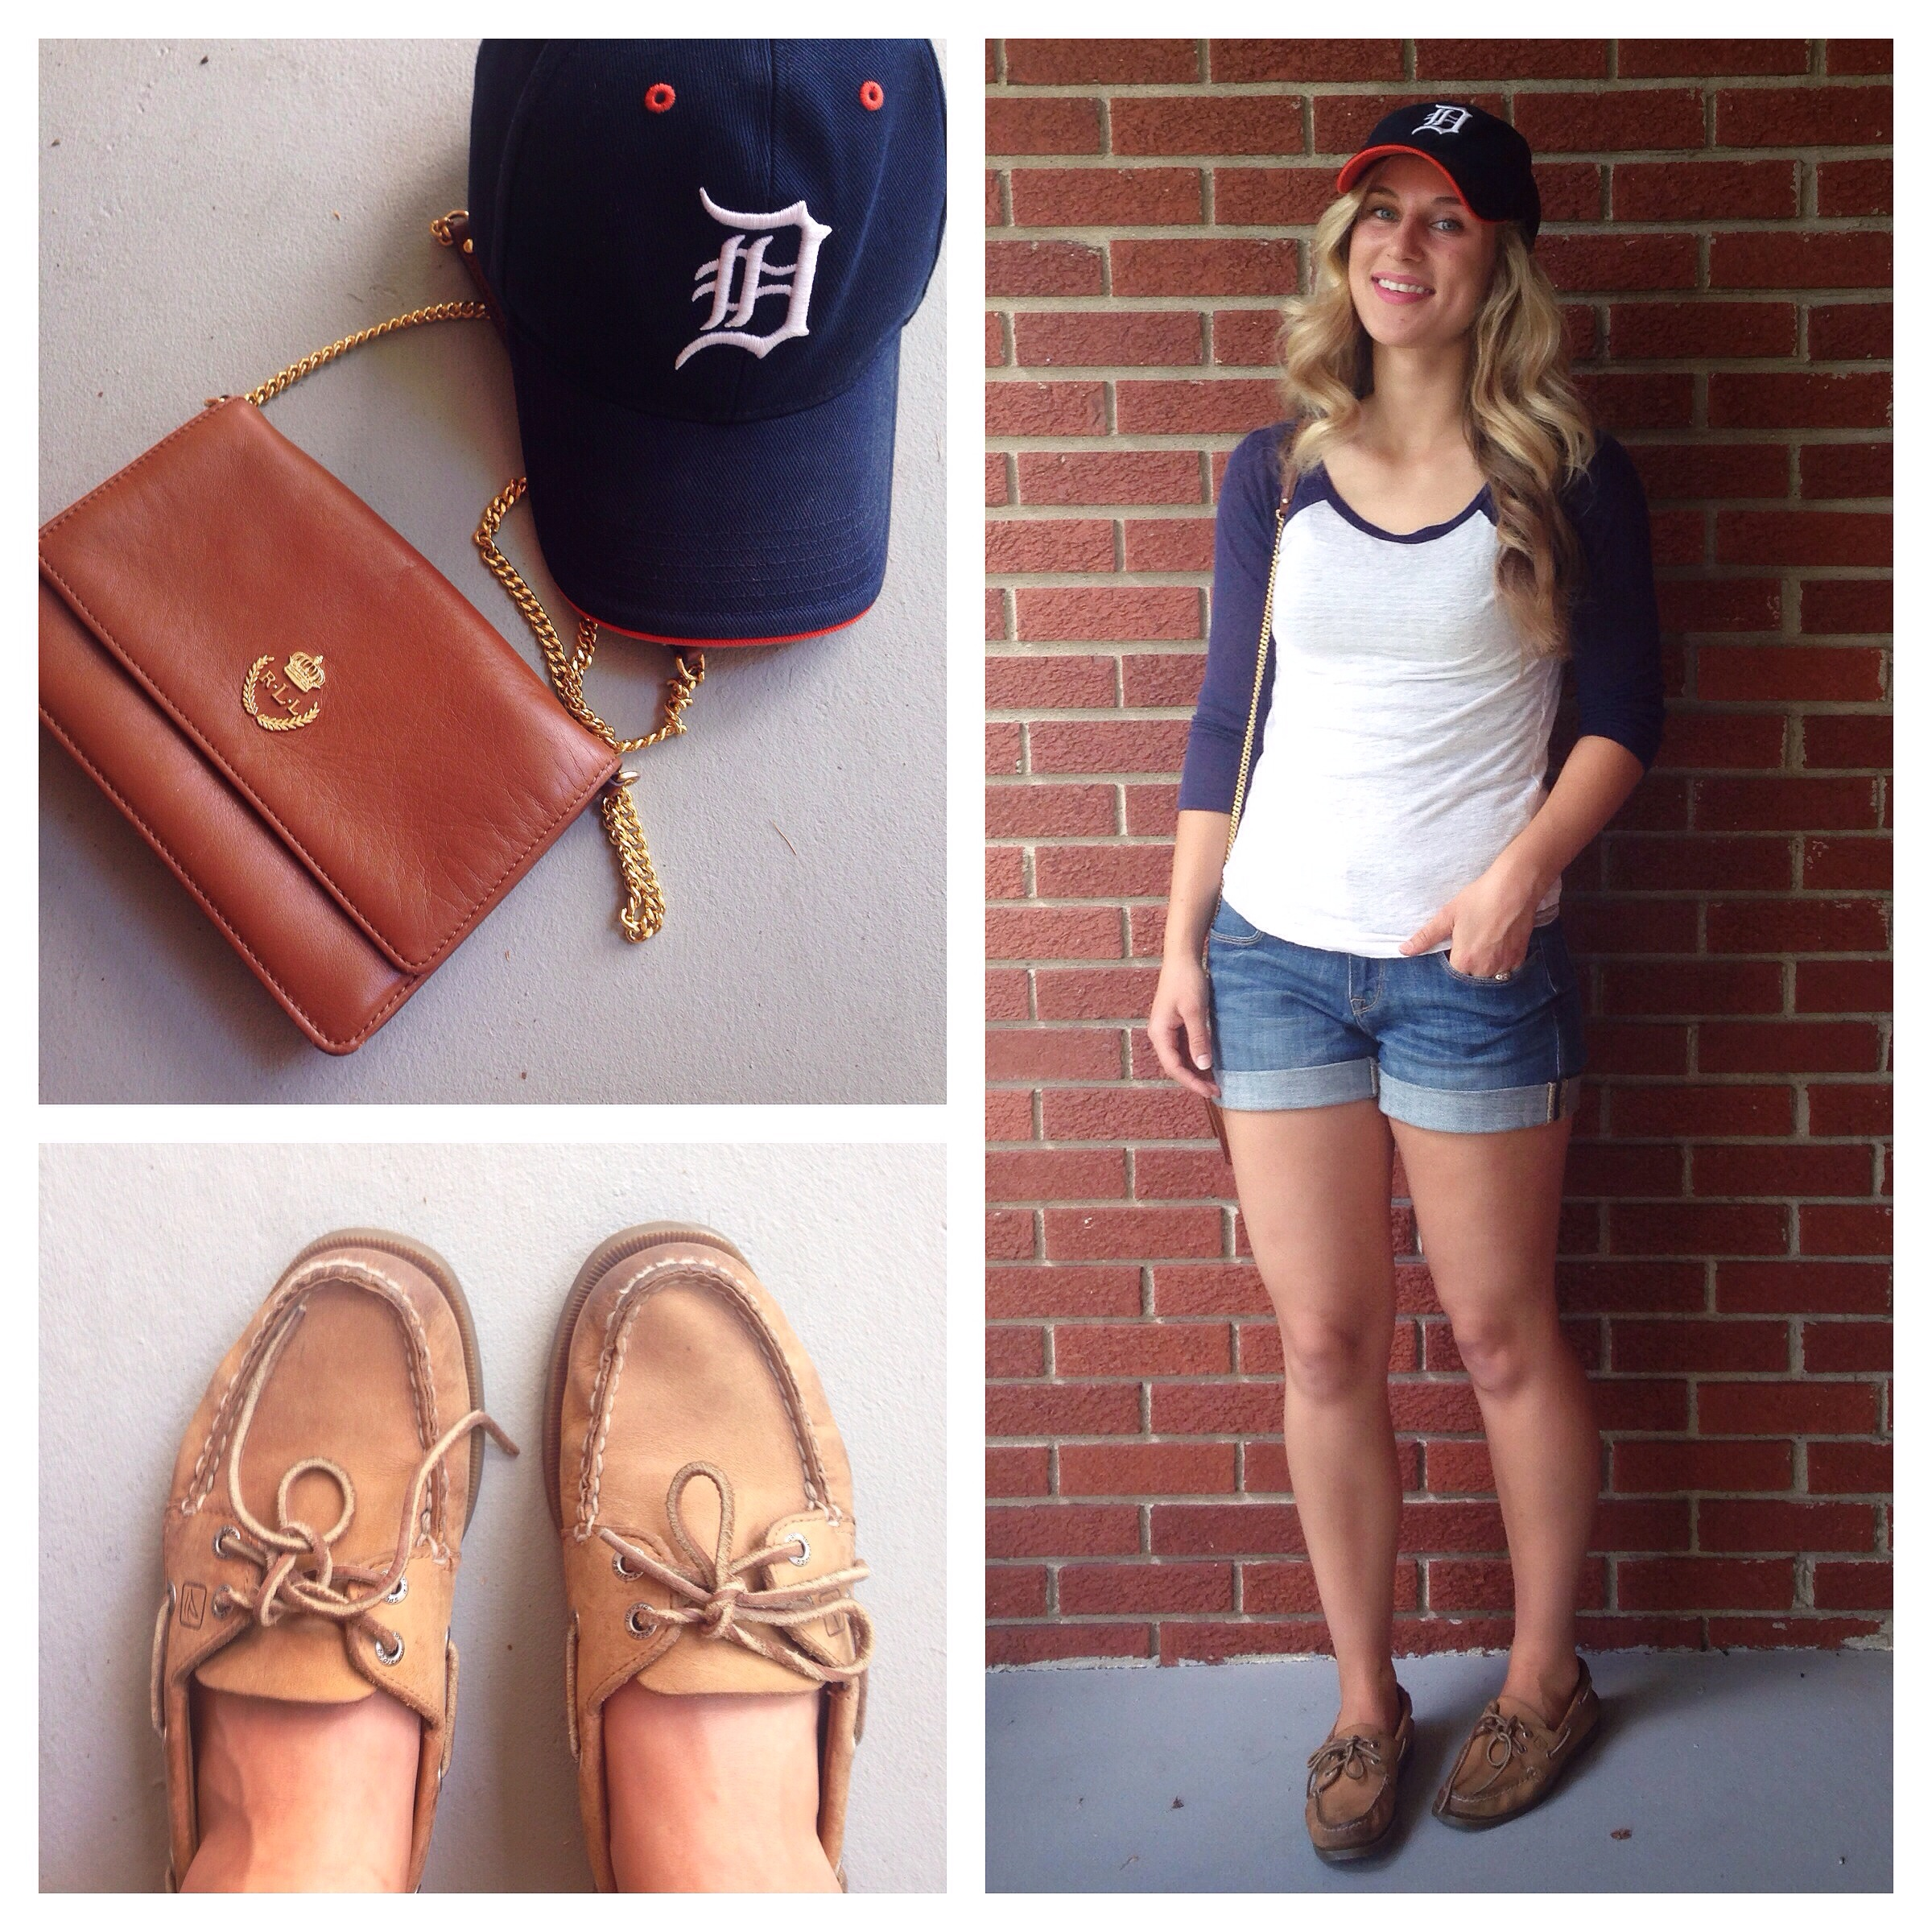 Game baseball date what to wear